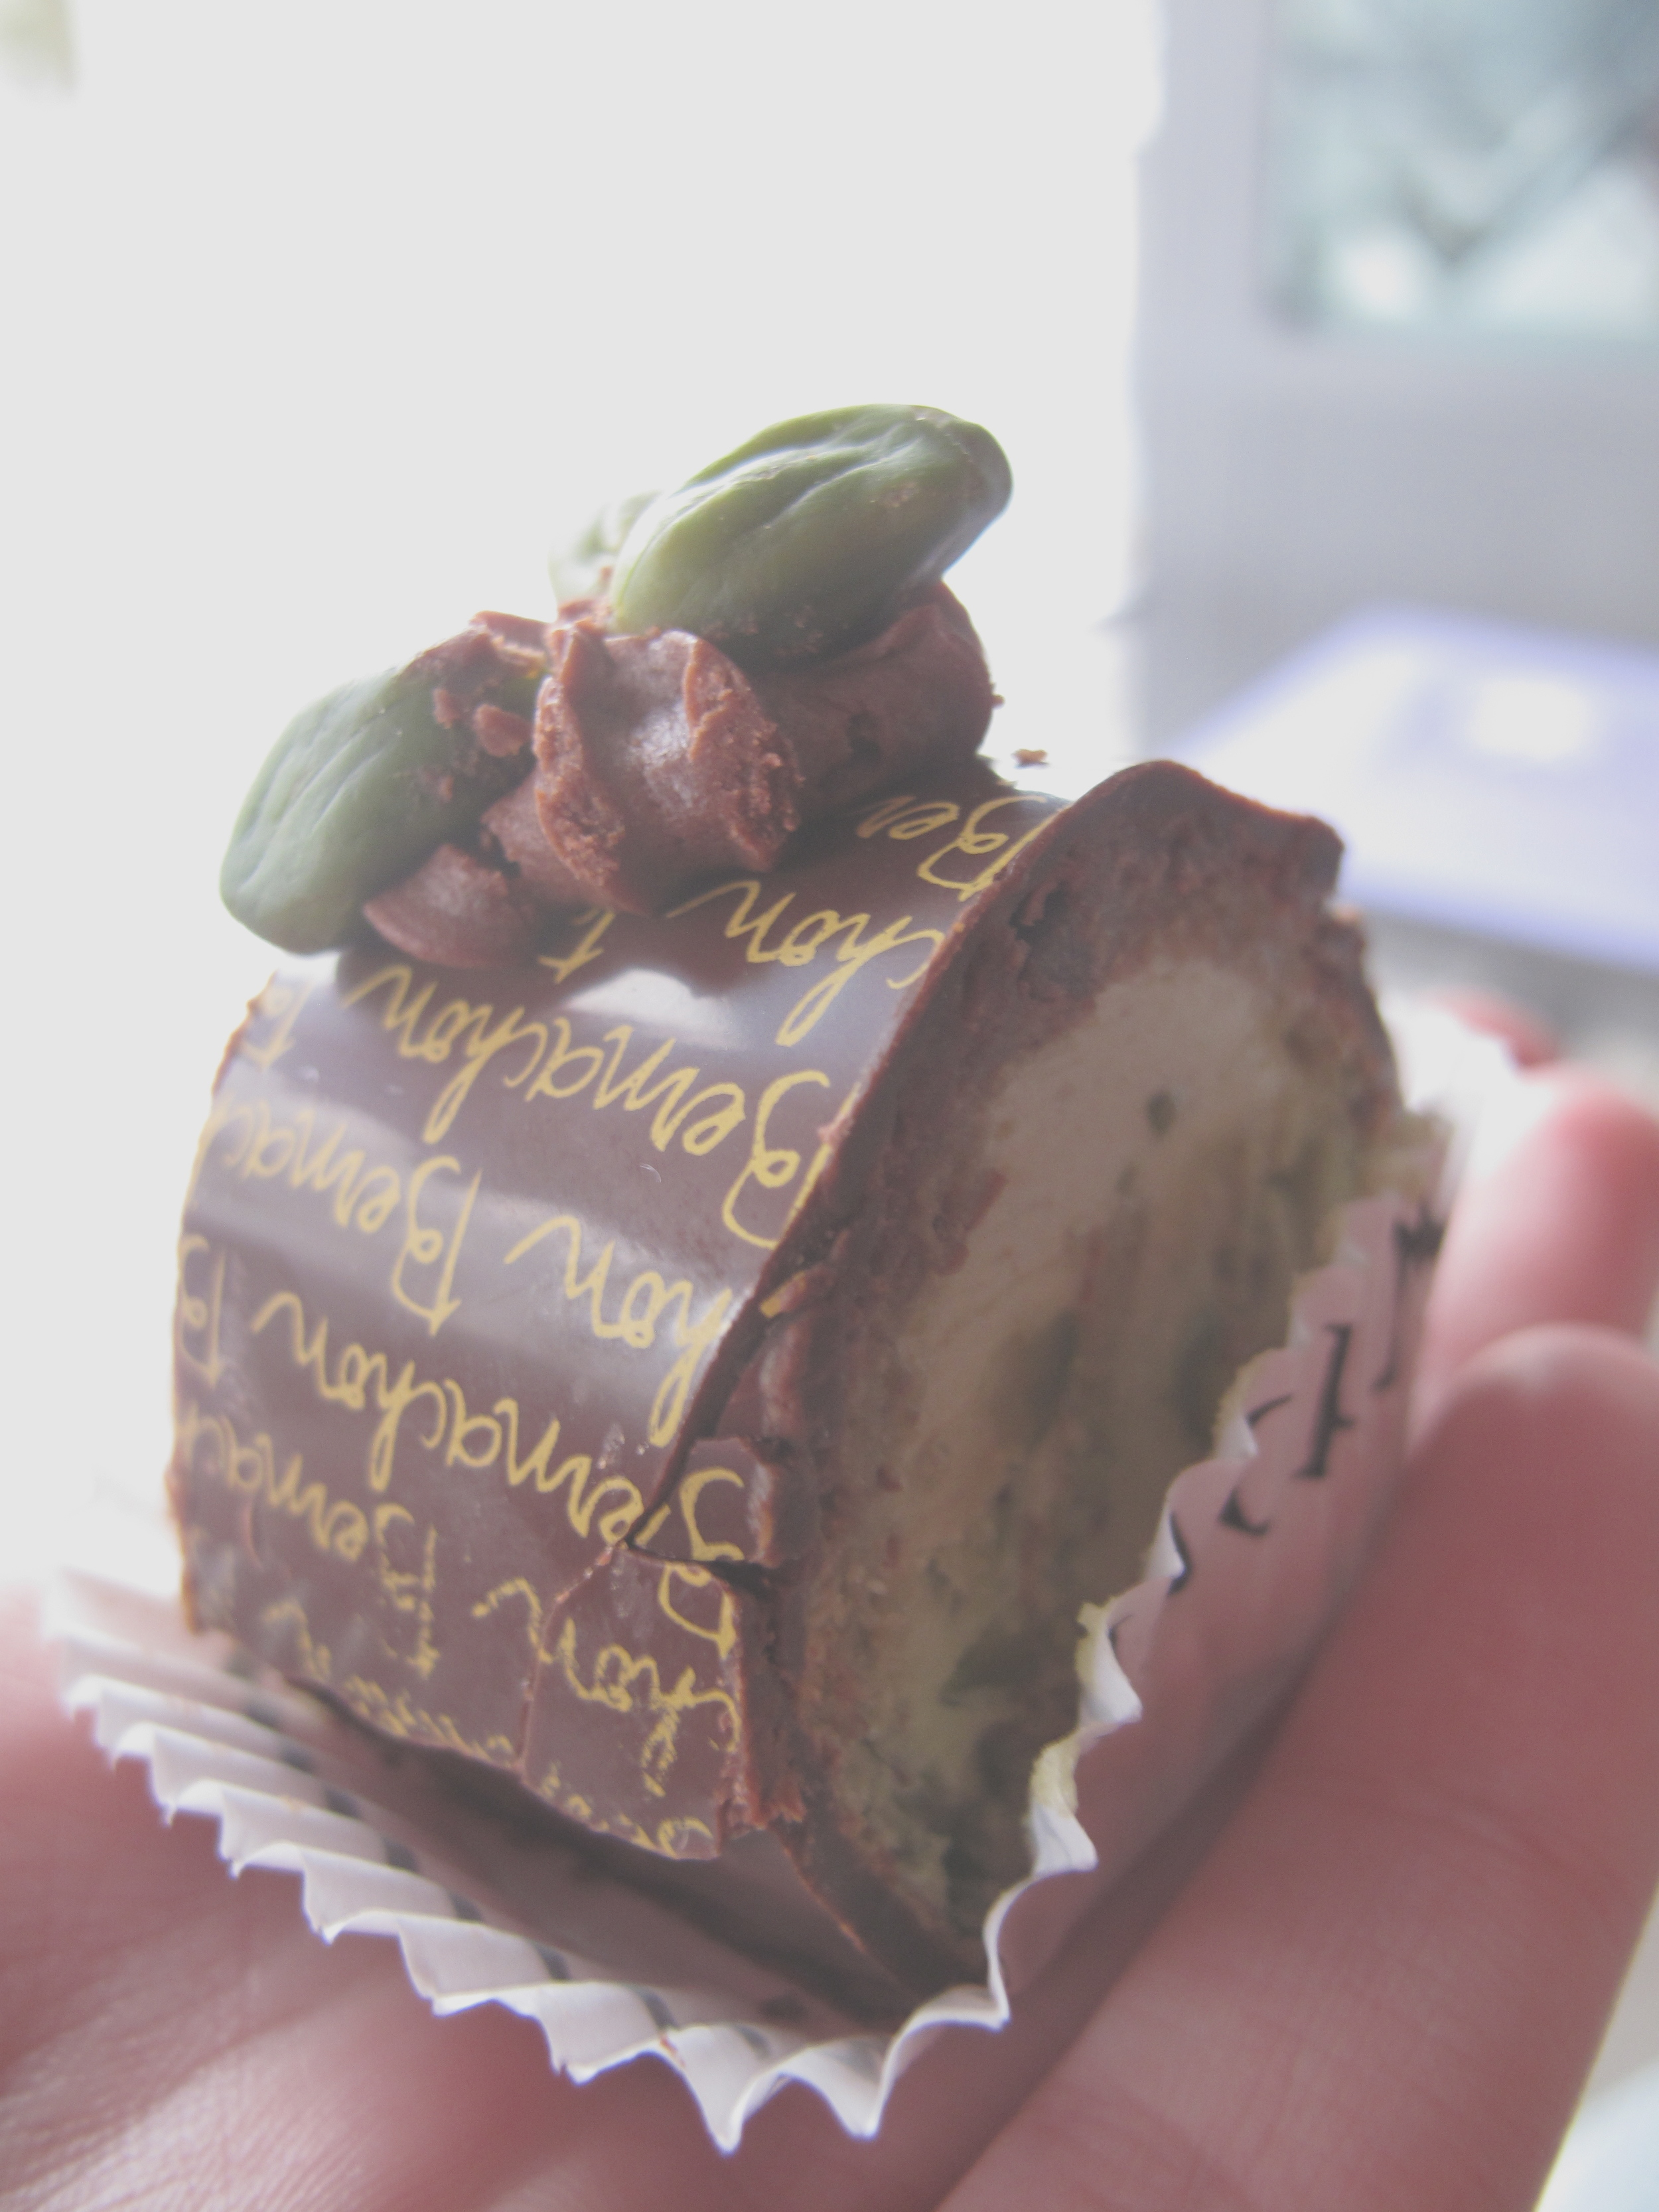 Chocolate and pistachio from Bernachon in Lyon